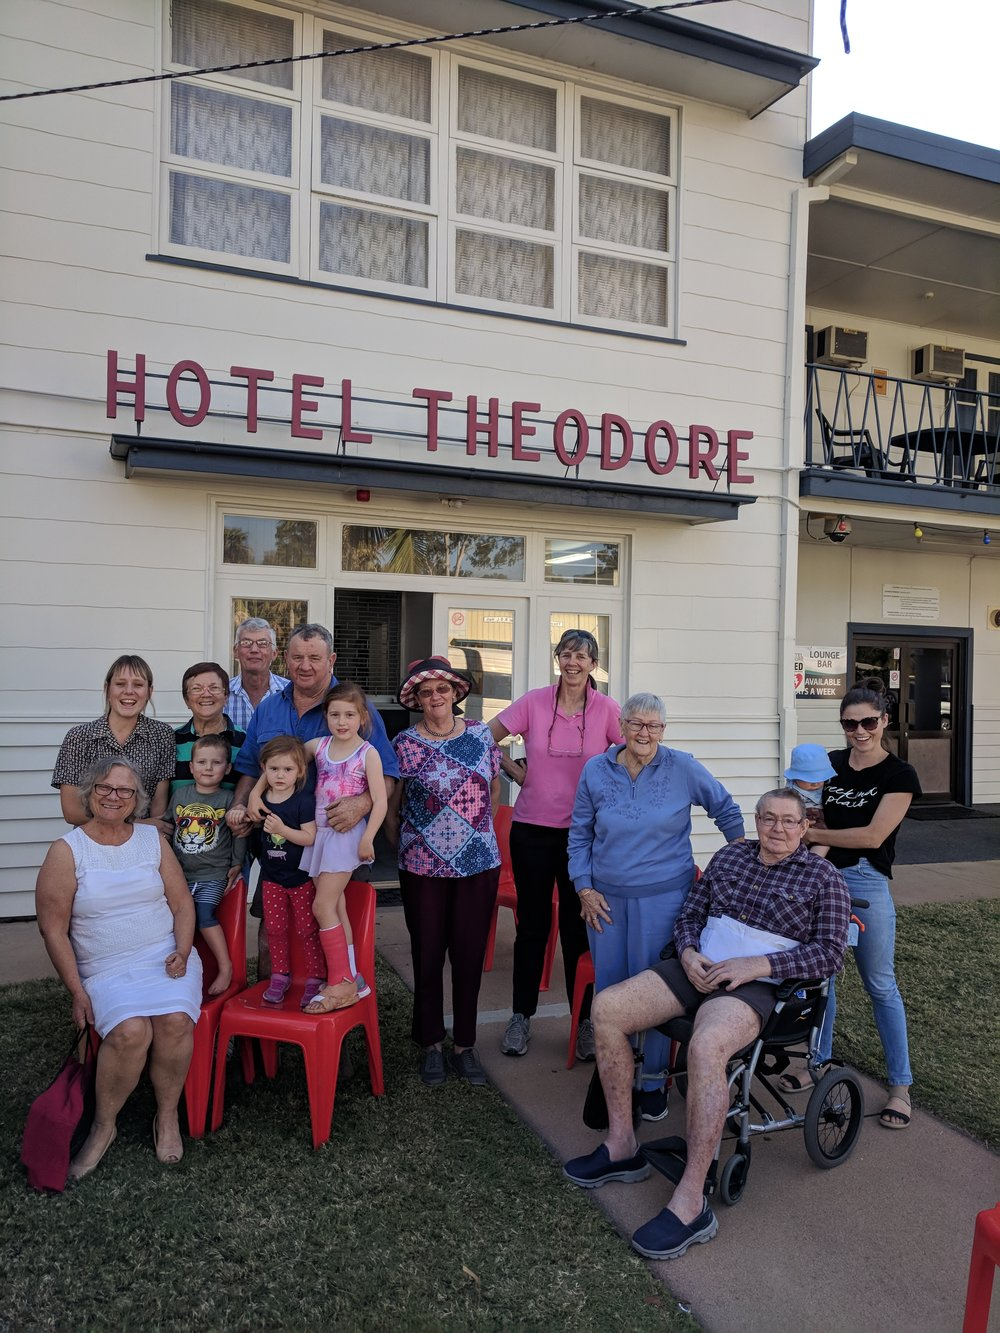 Hotel Theodore - community owned!